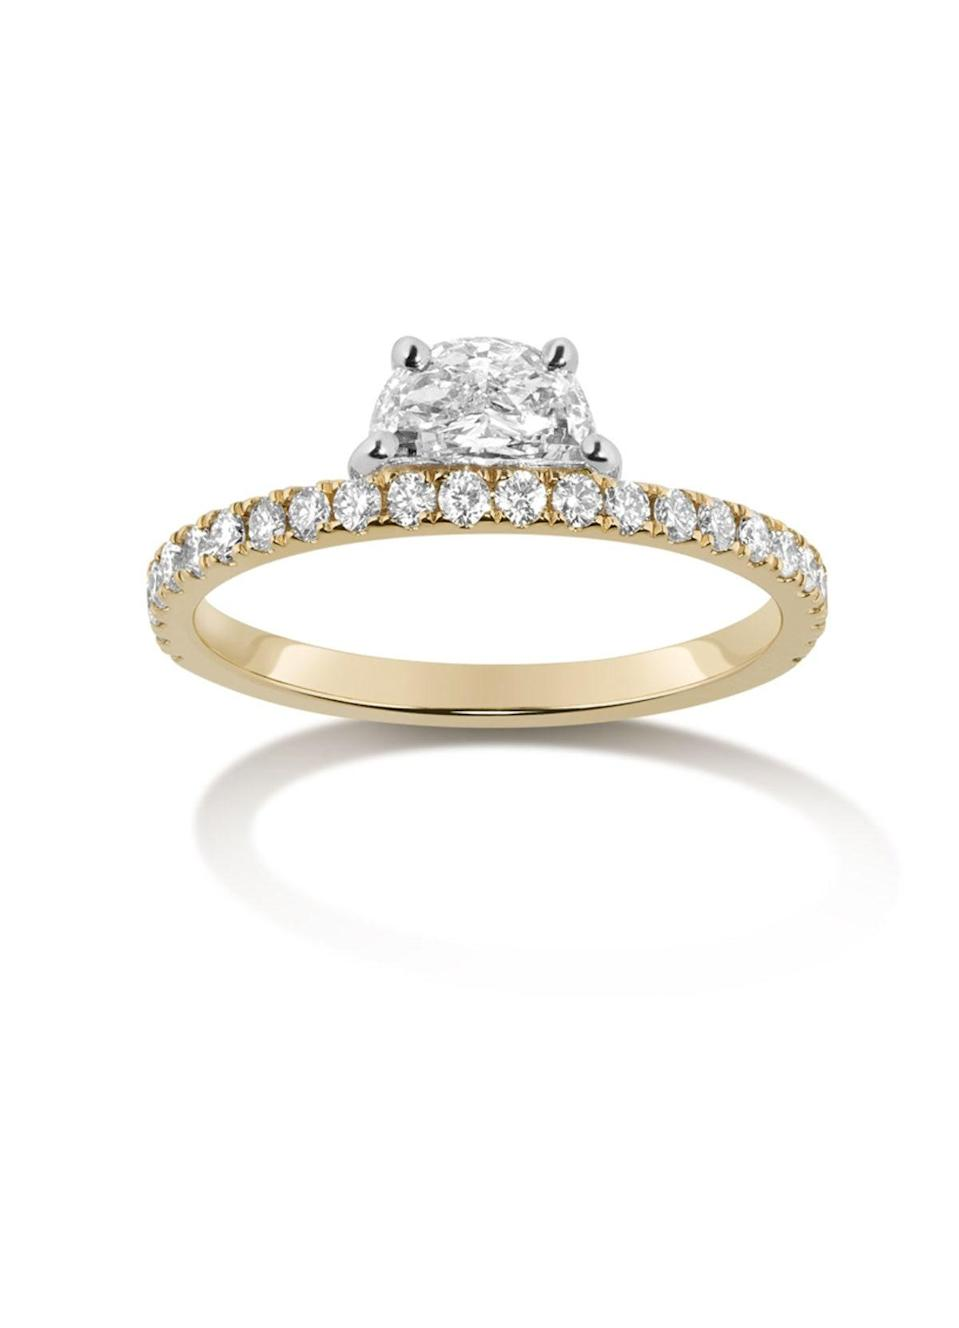 """Also seeing a comeback is yellow gold, according to Zimmerman: """"With a diamond pavé band, the color of the metal peeking through is subtle yet adds a layer of uniqueness."""" $3900, Selin Kent. <a href=""""https://www.selinkent.com/collections/bridal-1/products/helia-pave-ring"""" rel=""""nofollow noopener"""" target=""""_blank"""" data-ylk=""""slk:Get it now!"""" class=""""link rapid-noclick-resp"""">Get it now!</a>"""